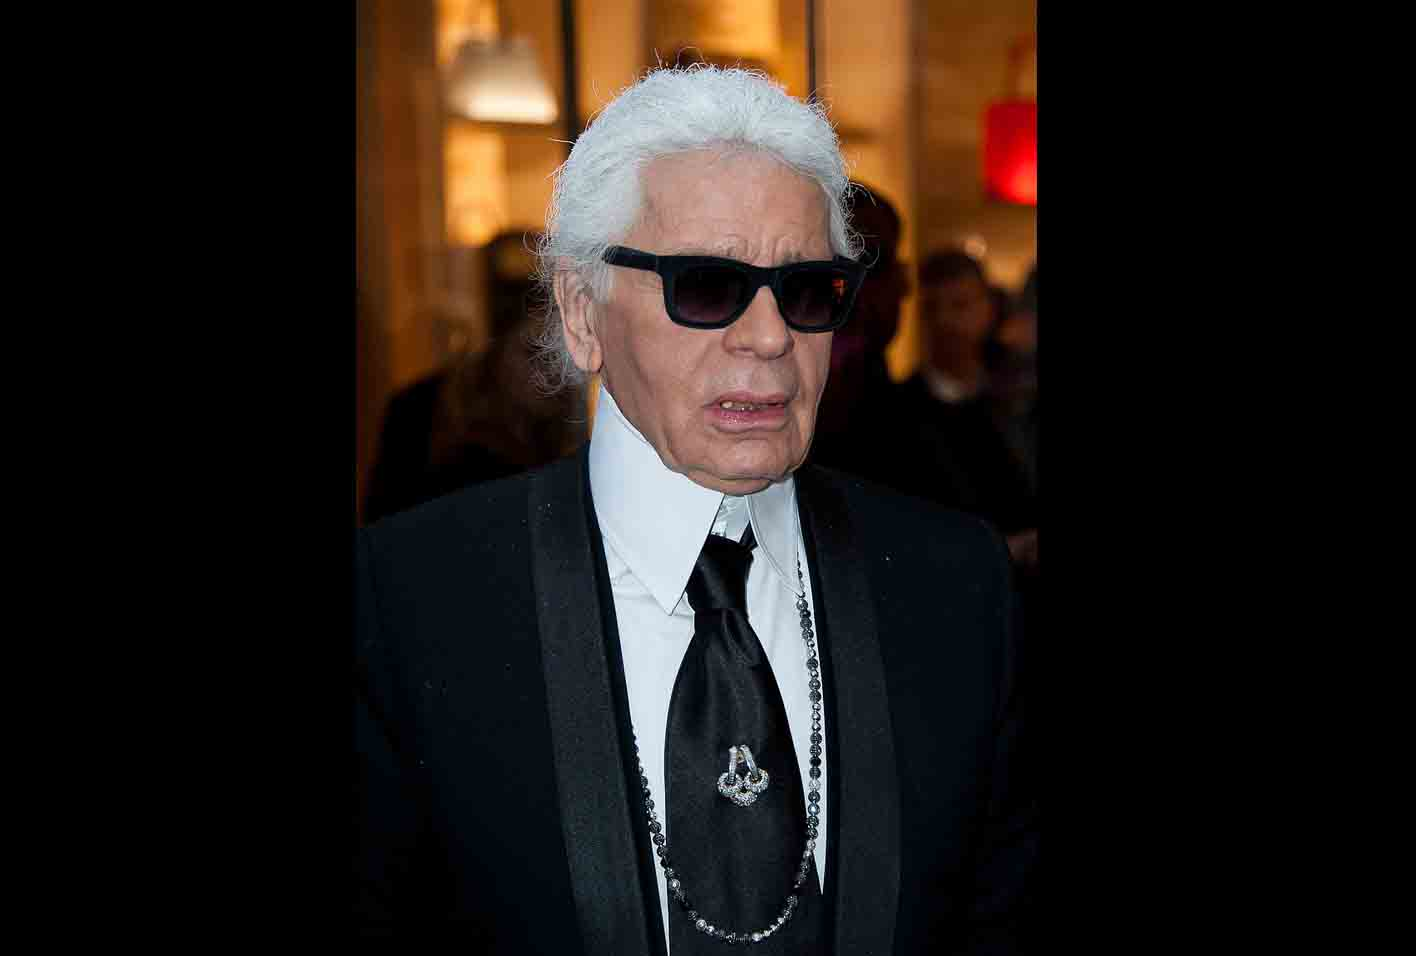 Ikon Fashion Karl Lagerfeld Meninggal